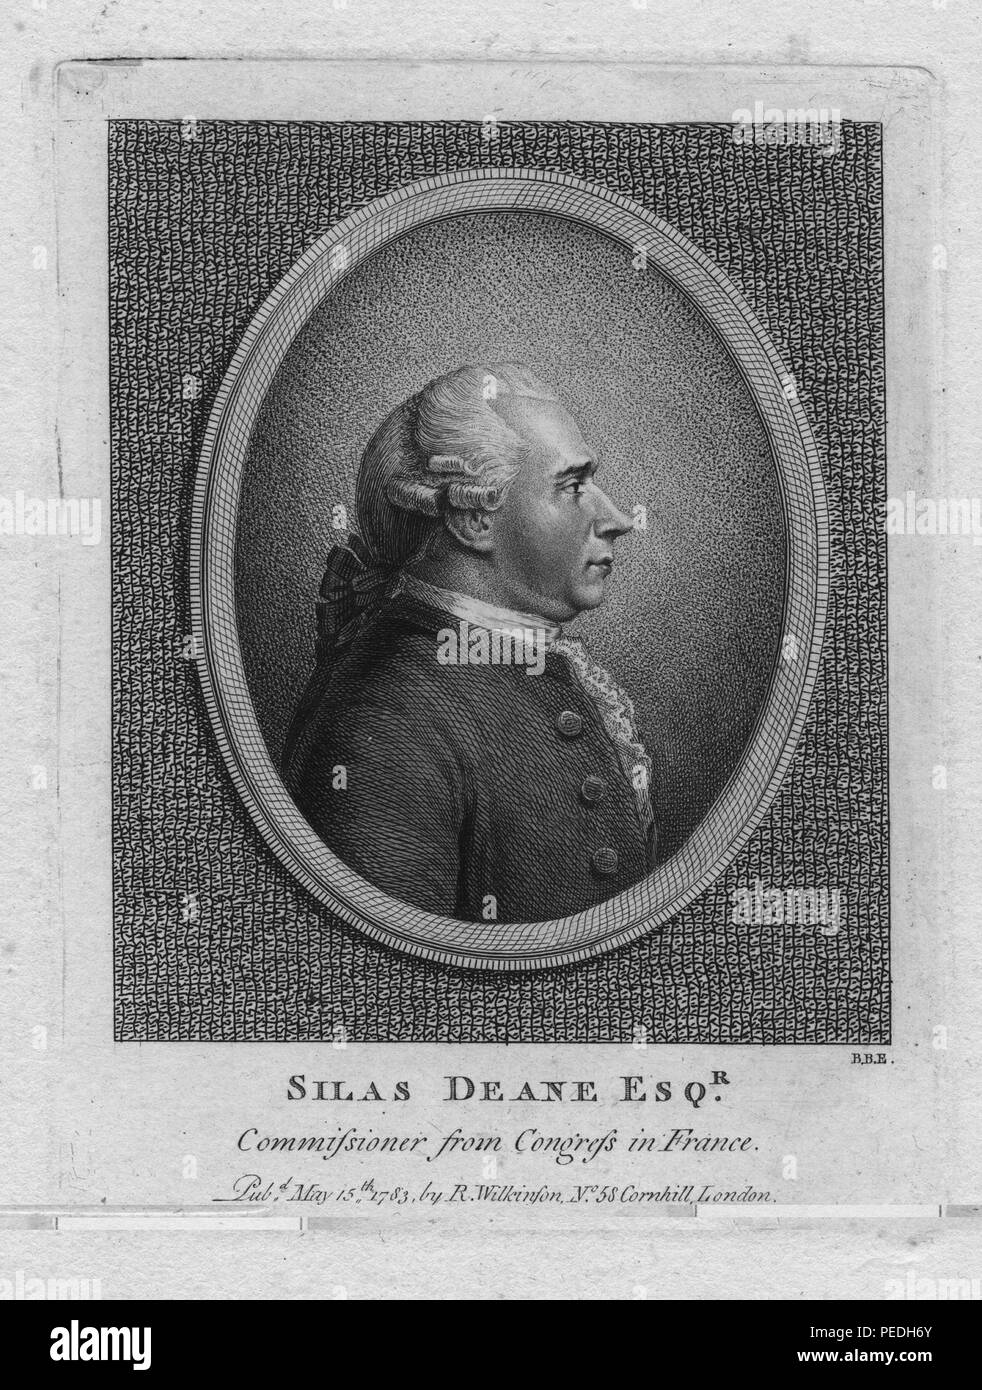 Engraved portrait of Silas Deane, merchant and supporter of American Independence who was eventually accused of financial impropriety by Congress, 1836. From the New York Public Library. () - Stock Image